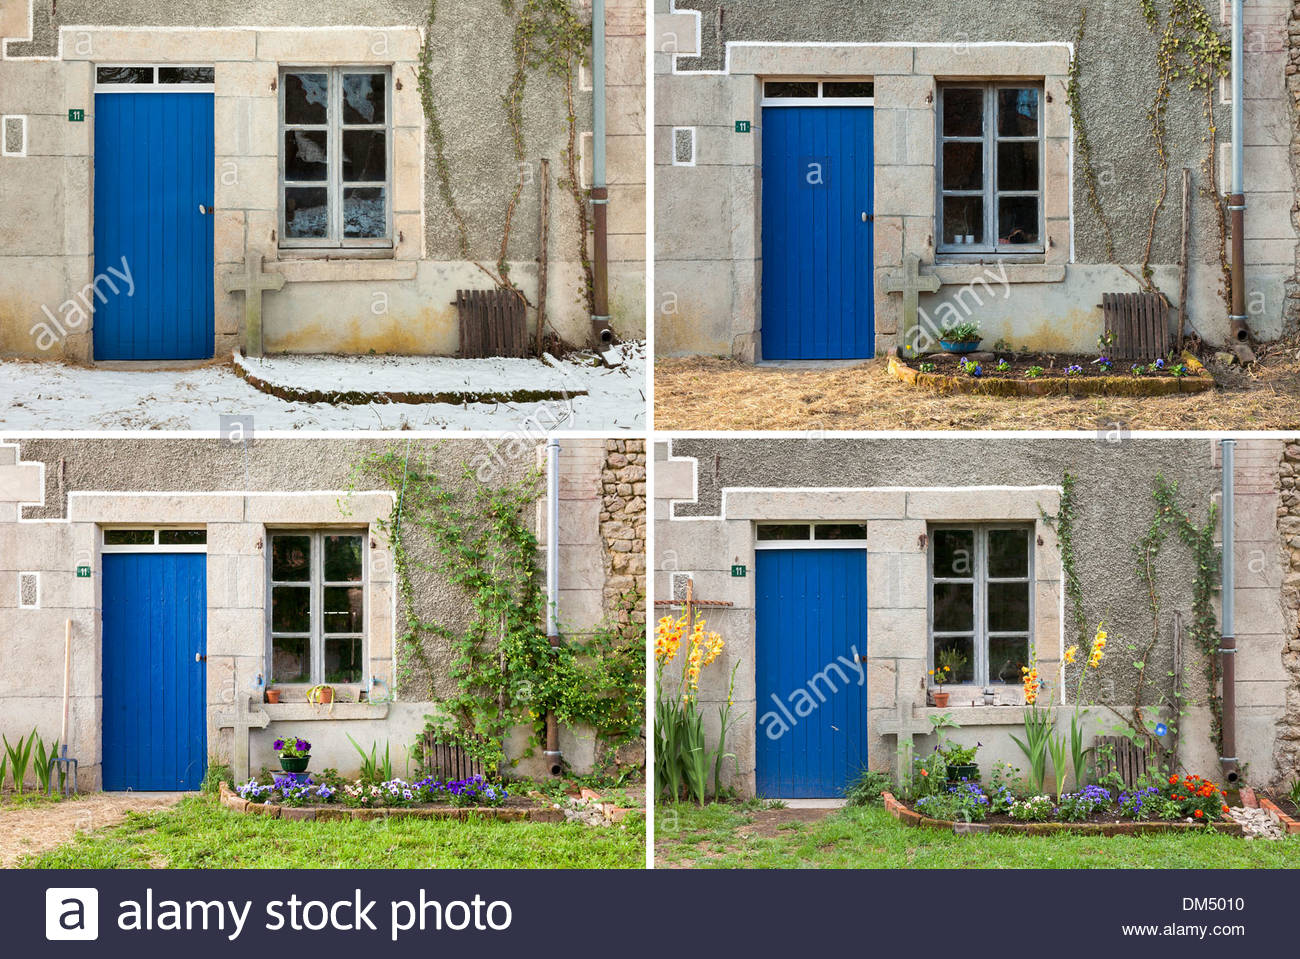 Front door of old Farmhouse, composite showing four seasons (winter, spring, summer, autumn) of same scene - Stock Image